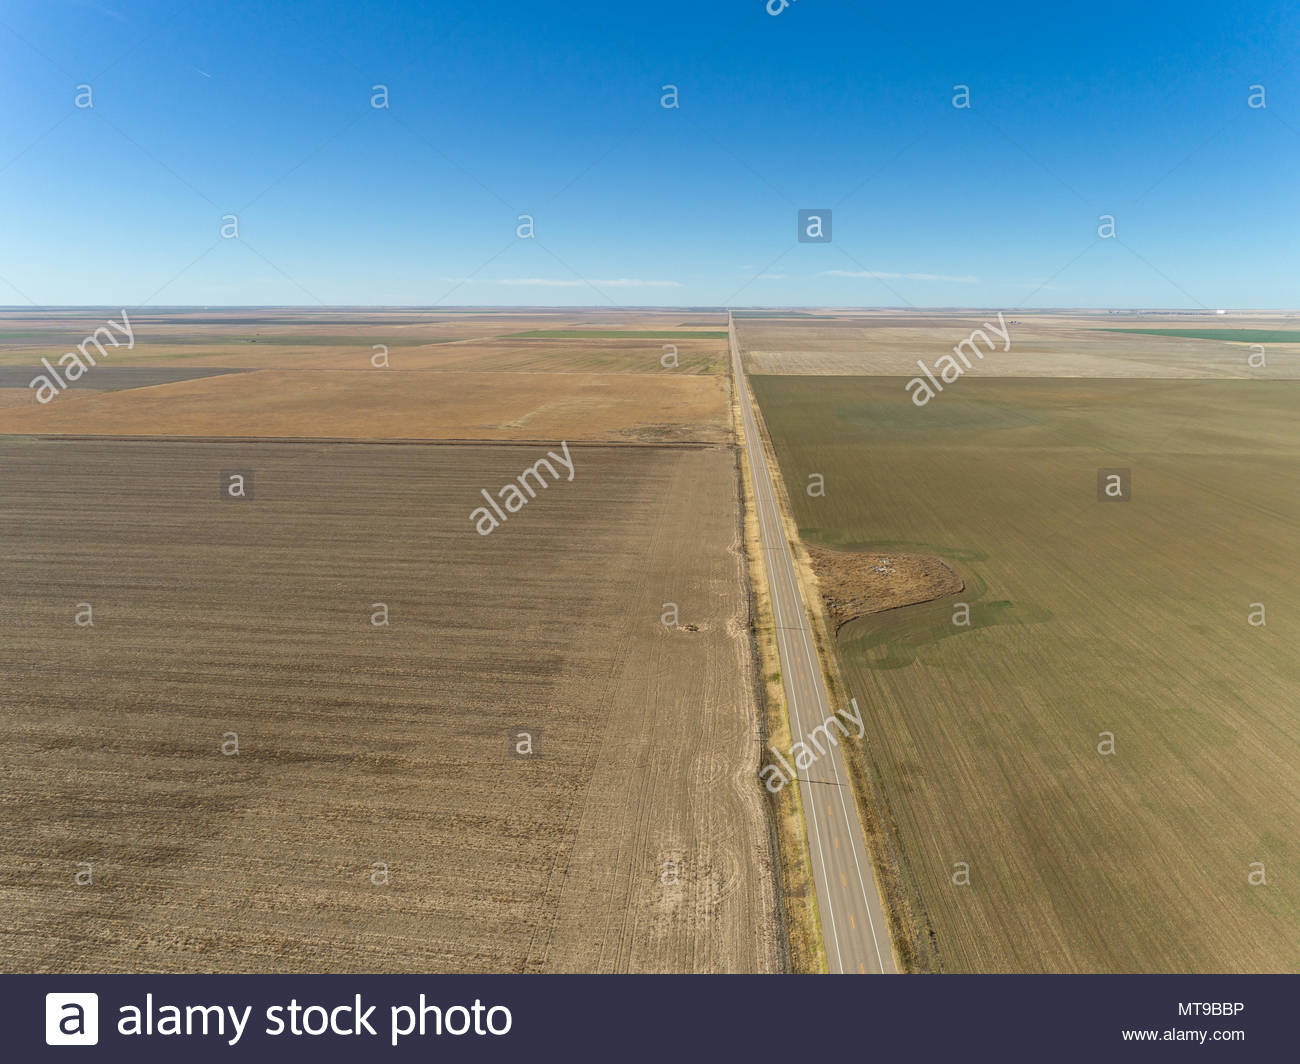 A flat landscape of plowed empty fields and an empty road leads to the horizon in northwestern Oklahoma. Stock Photo